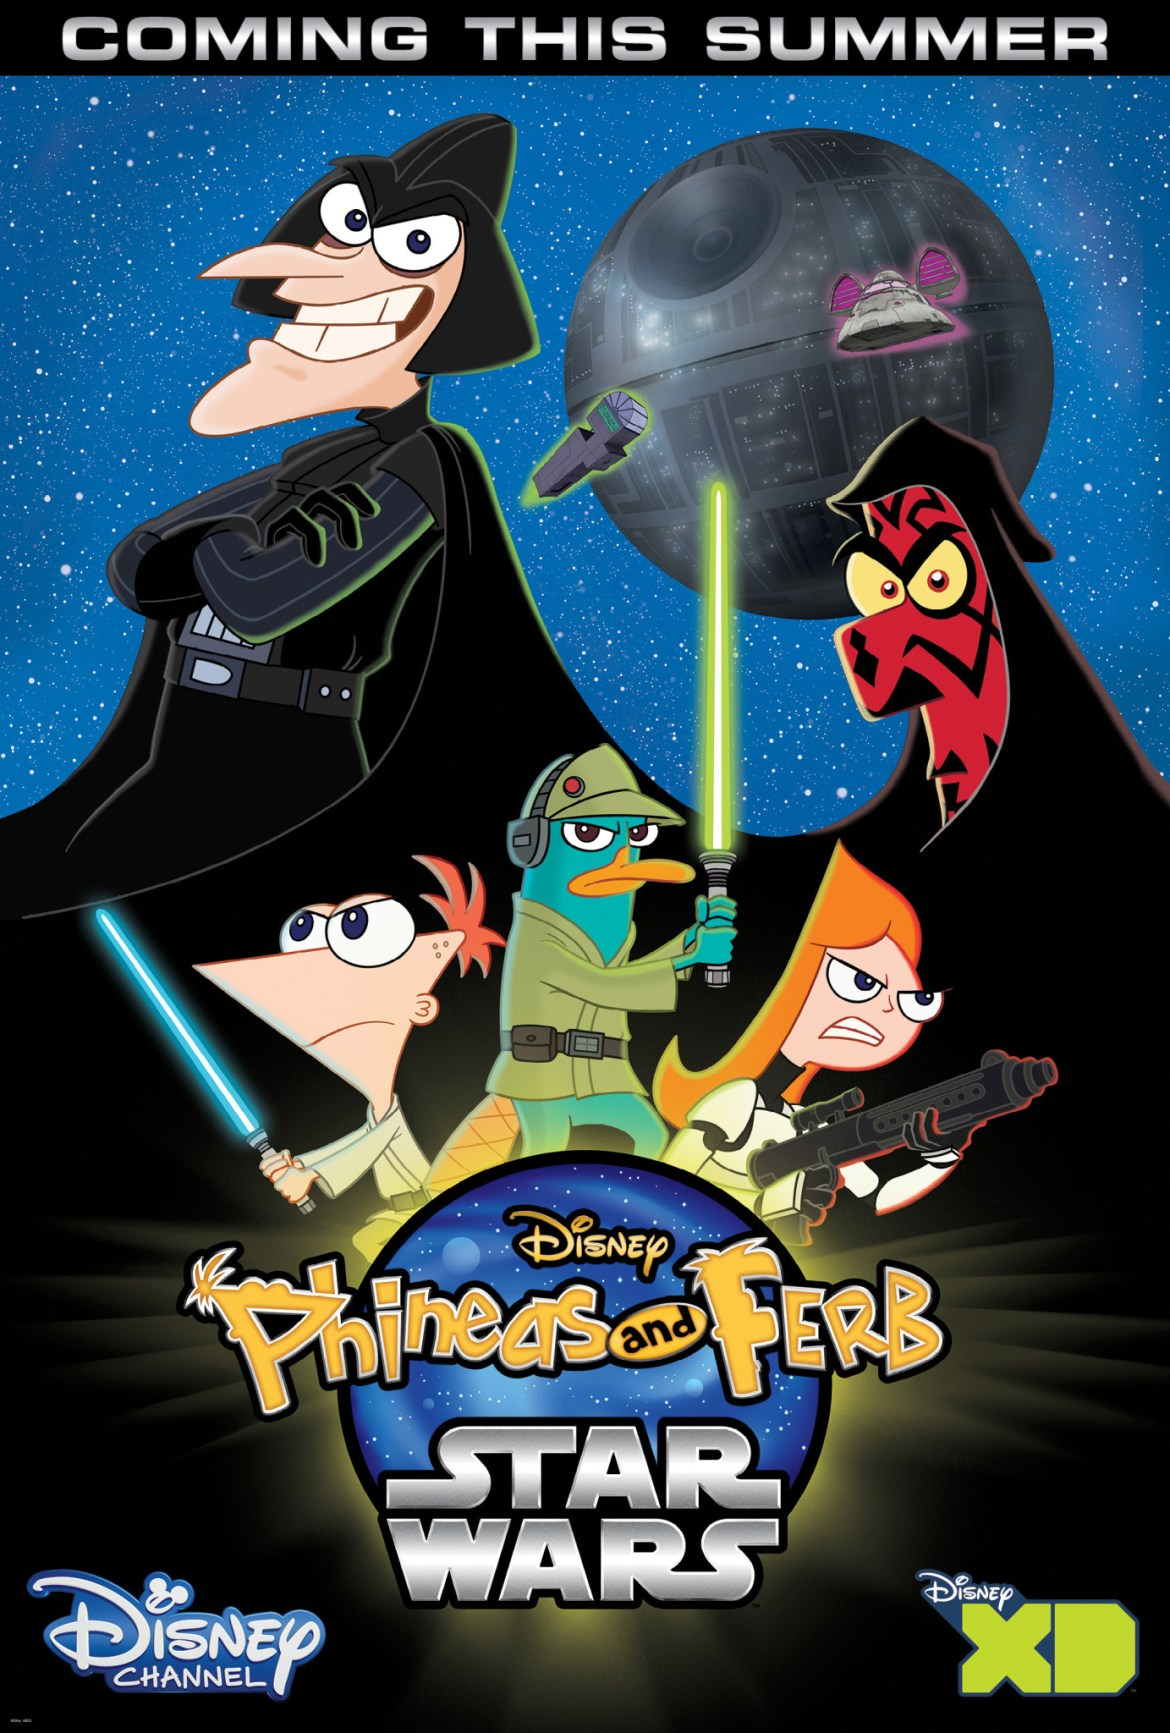 Move Over Star Wars Rebels, Phineas and Ferb are Here to Save Summer.